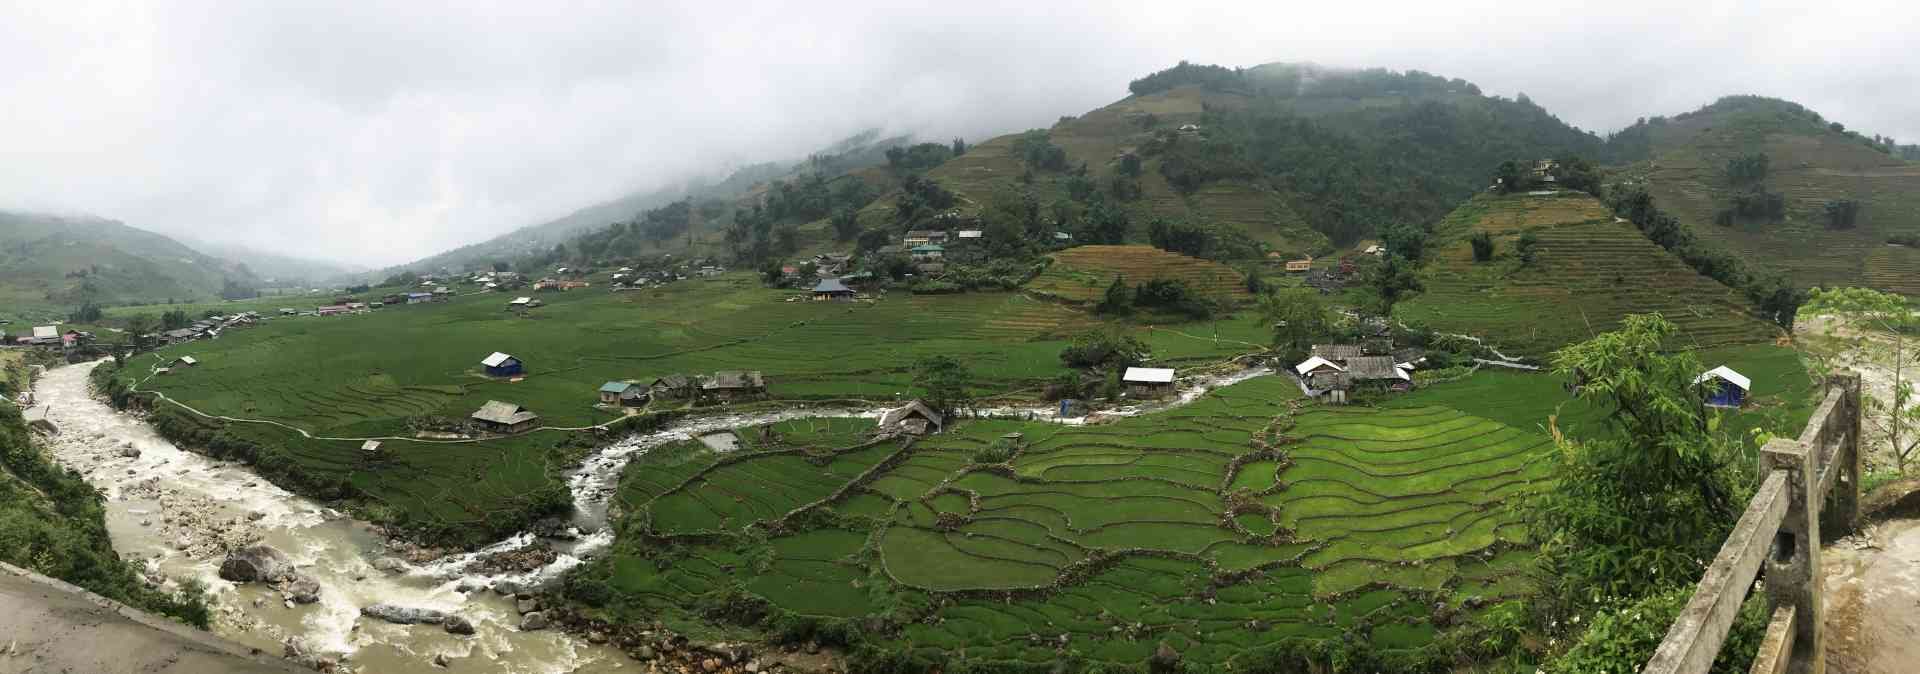 Rice fields of Hmong Village, Sapa by Zoe Francis